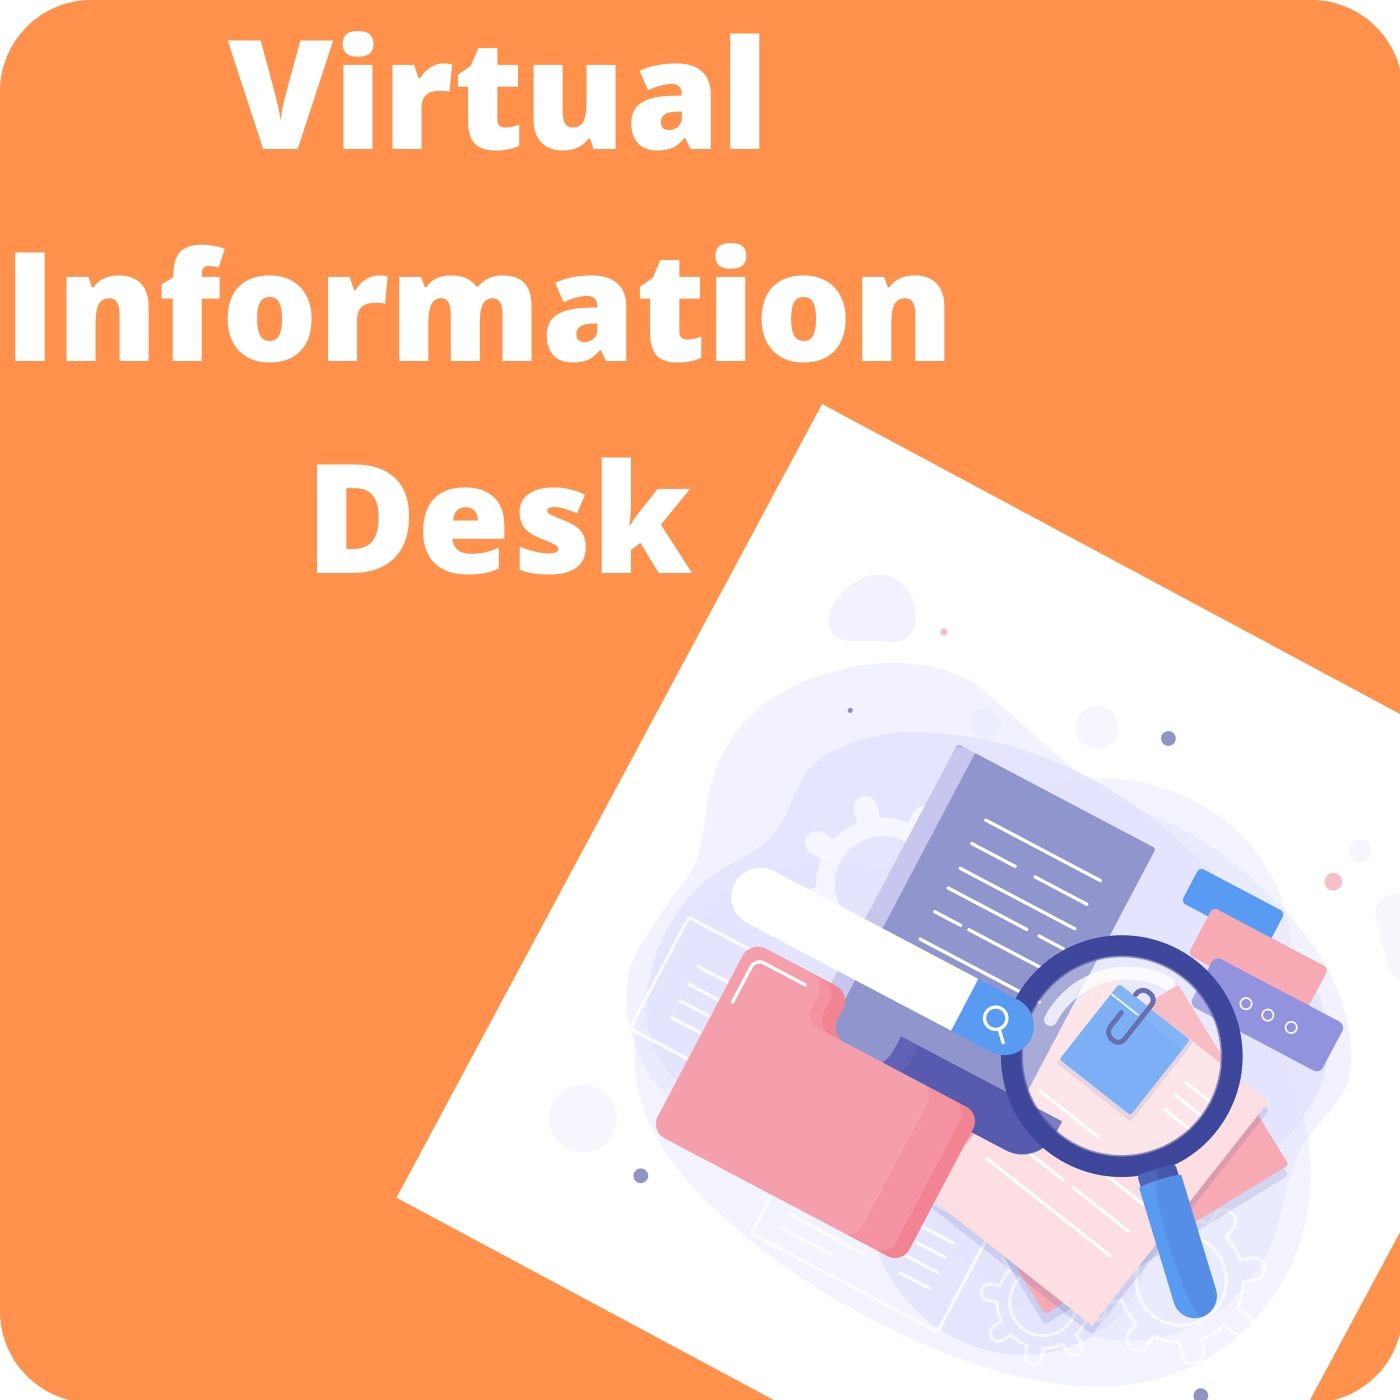 Virtual information desk shortcut